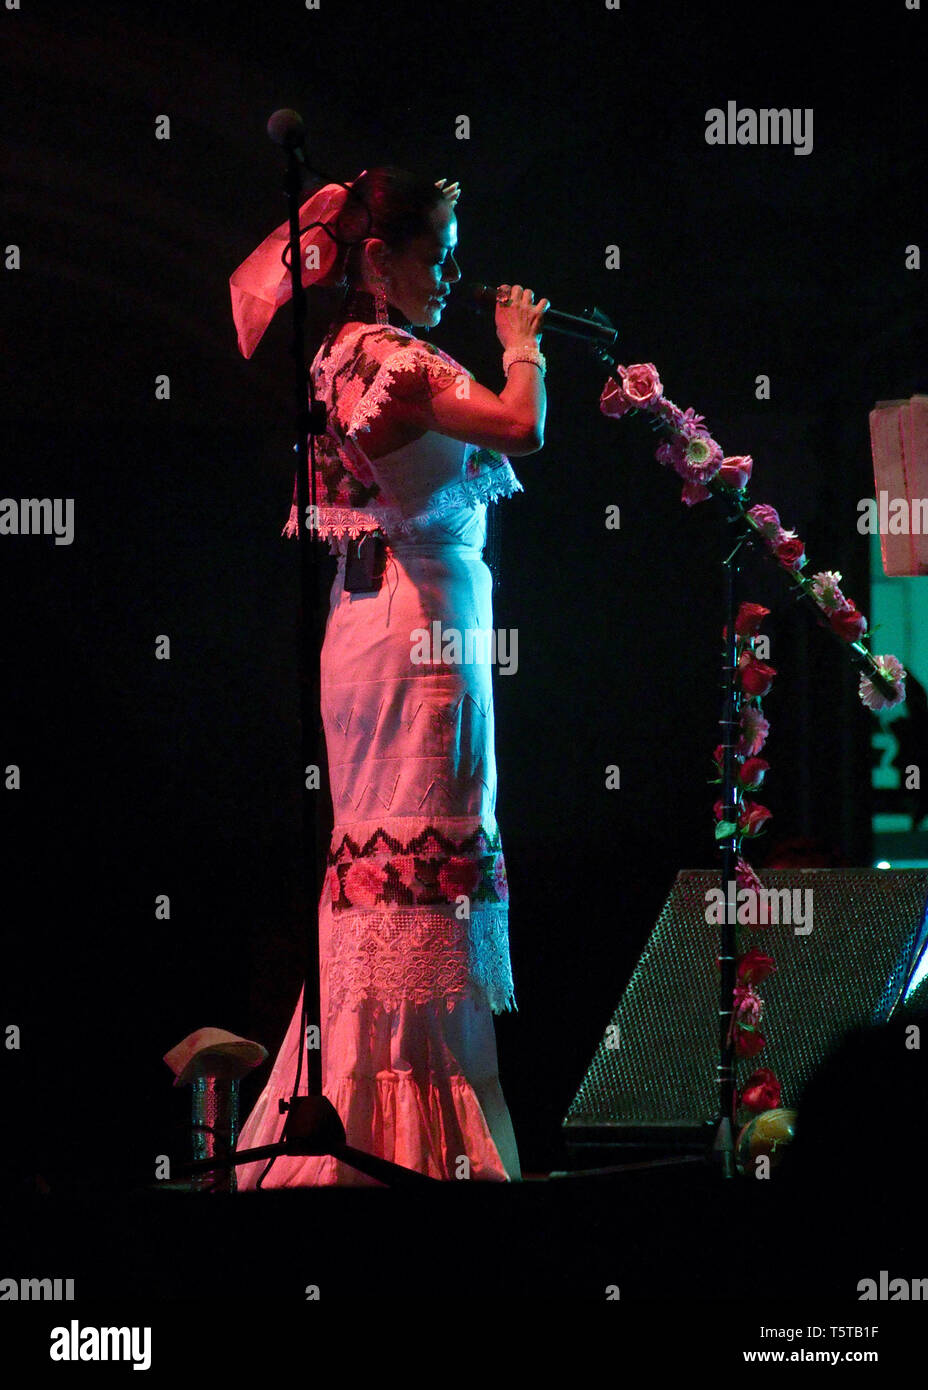 Merida, Yucatan, Mexico - 2013: Famous Mexican musician Lila Downs performing at a free outdoors show to celebrate the city's anniversary. - Stock Image